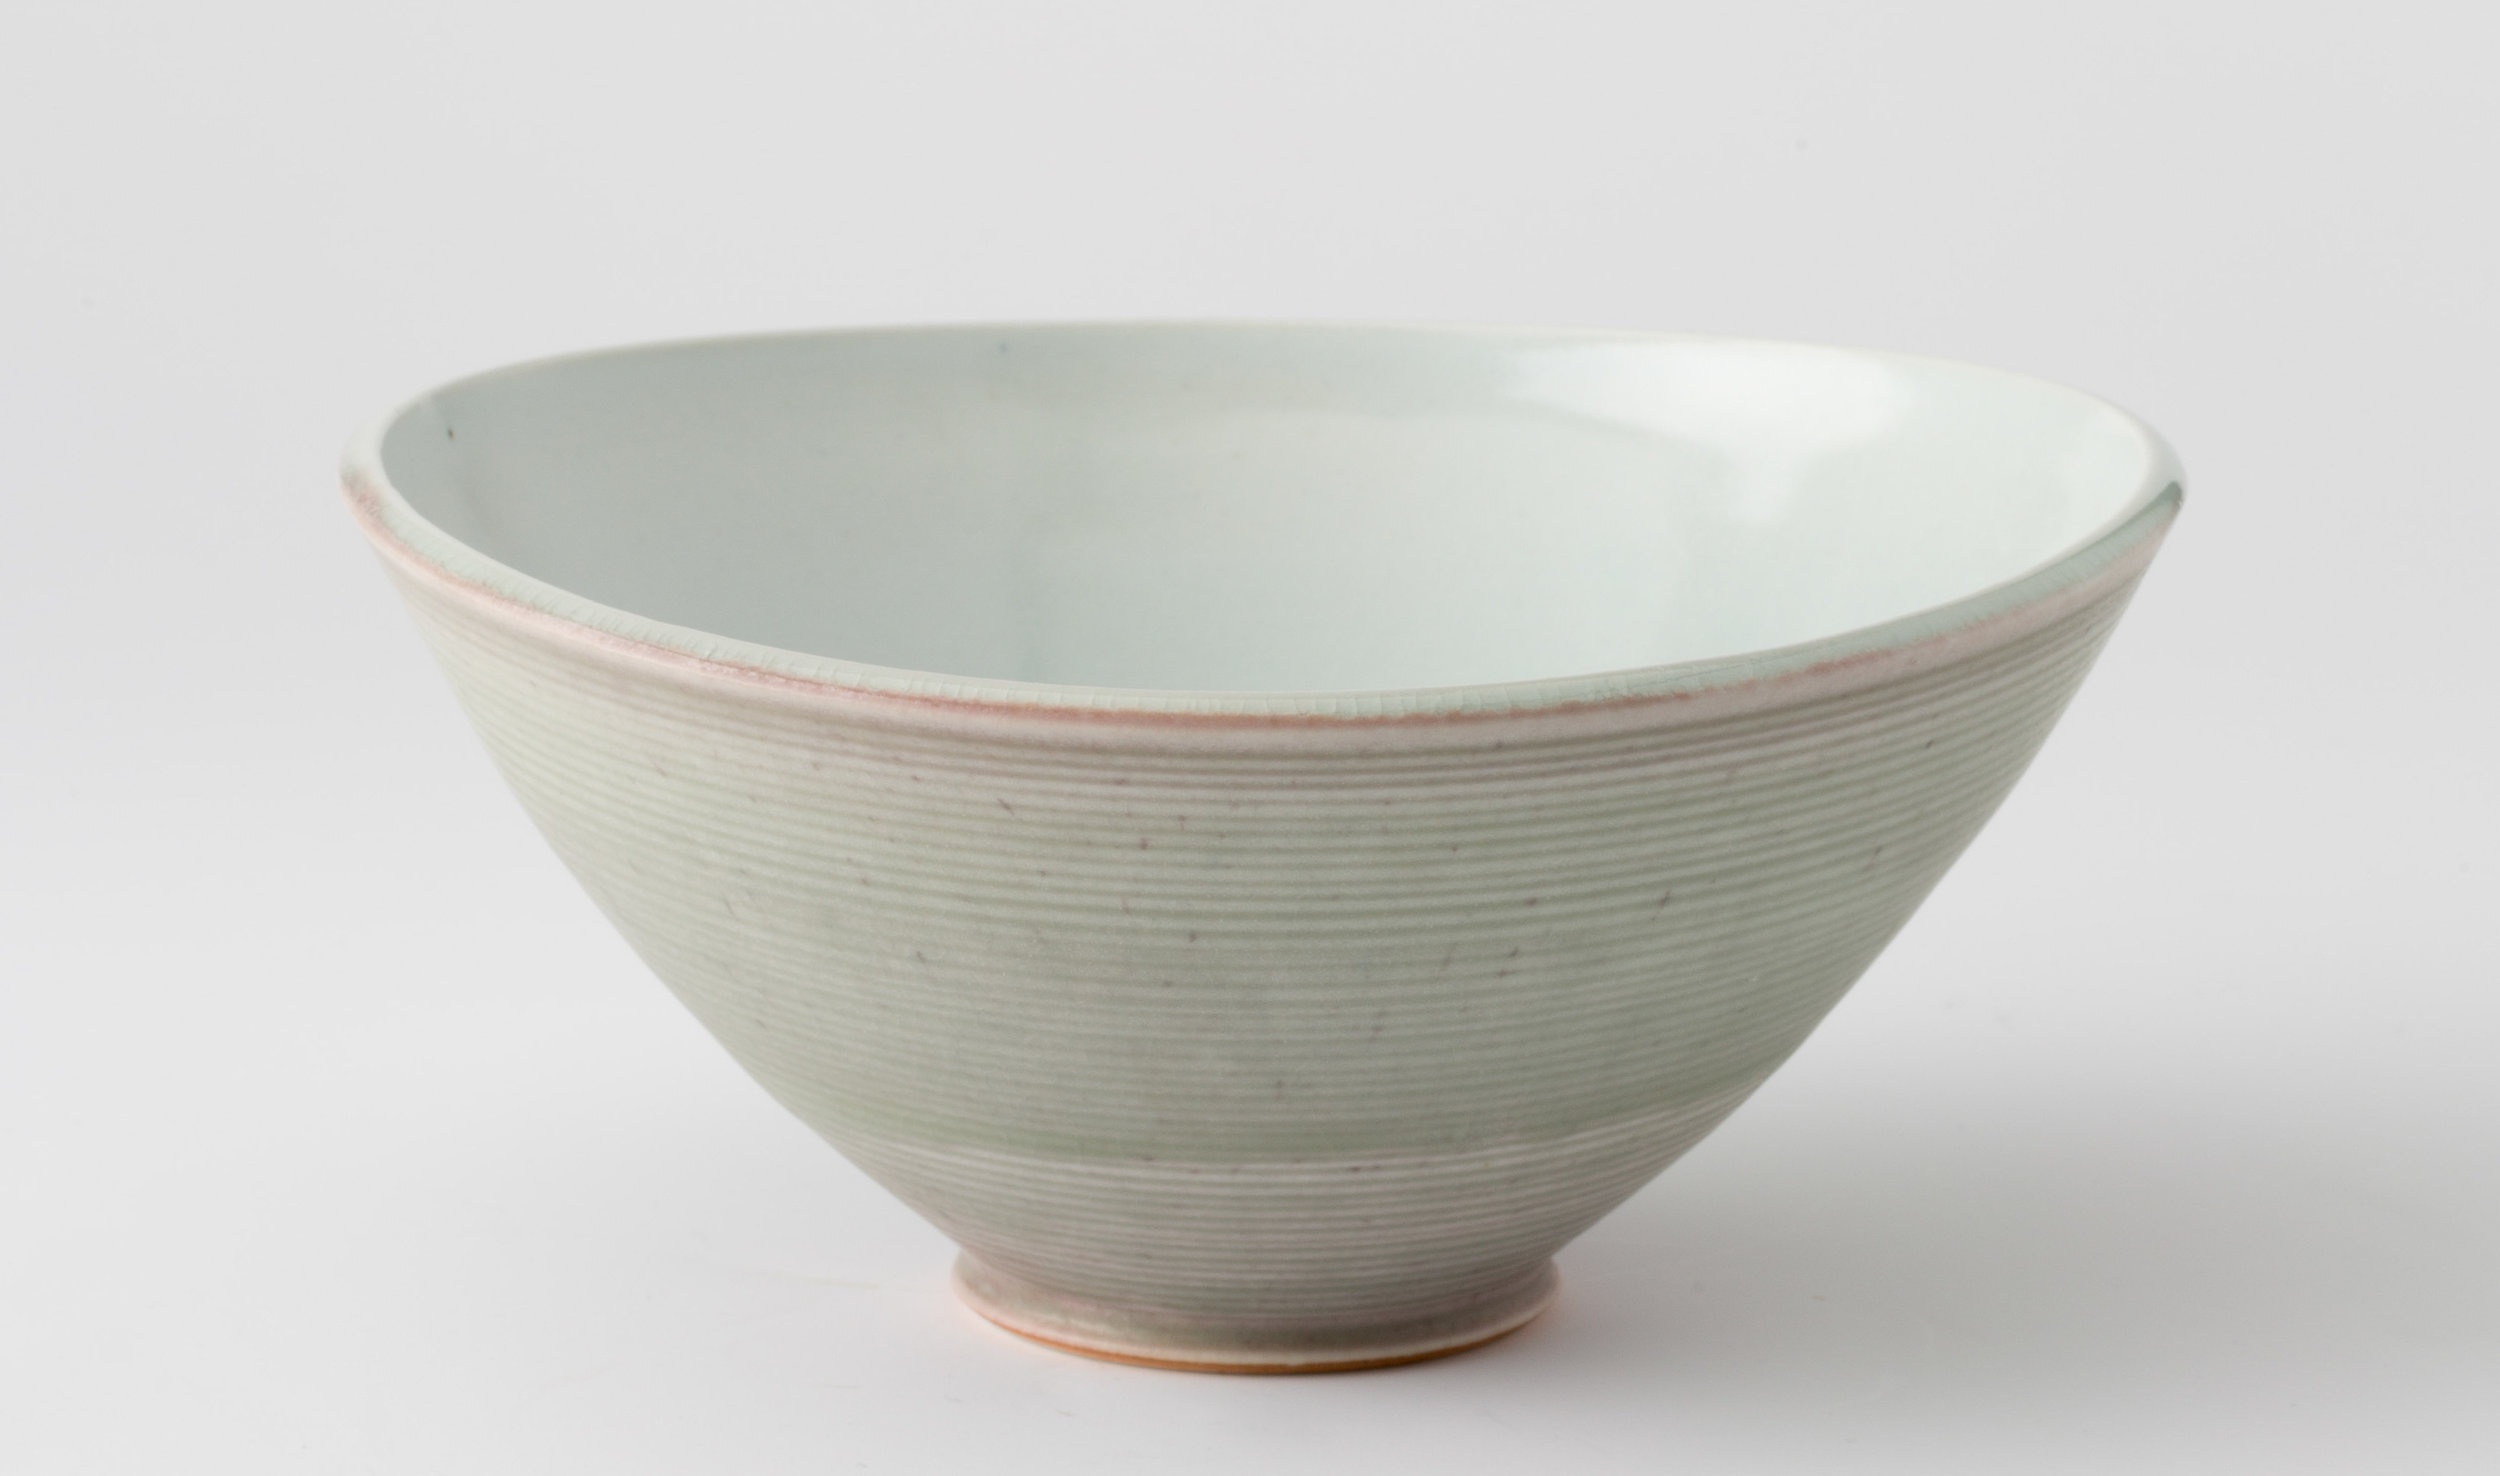 """Oval Bowl  Cone 10 Reduction Porcelain  6"""" W x 7"""" H  2016"""